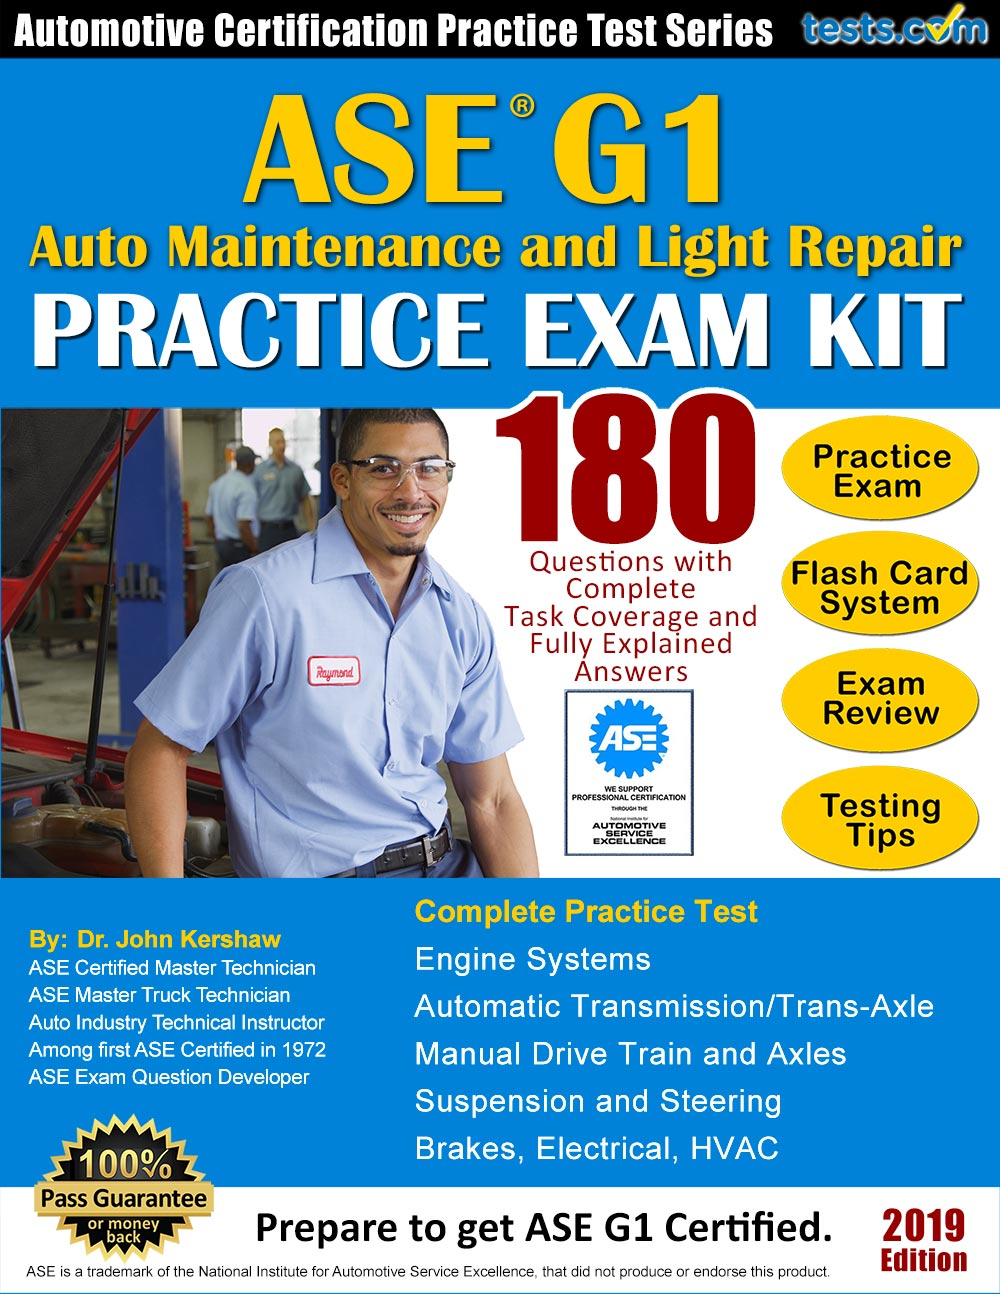 Ase g1 auto maintenance and light repair practice test xflitez Choice Image